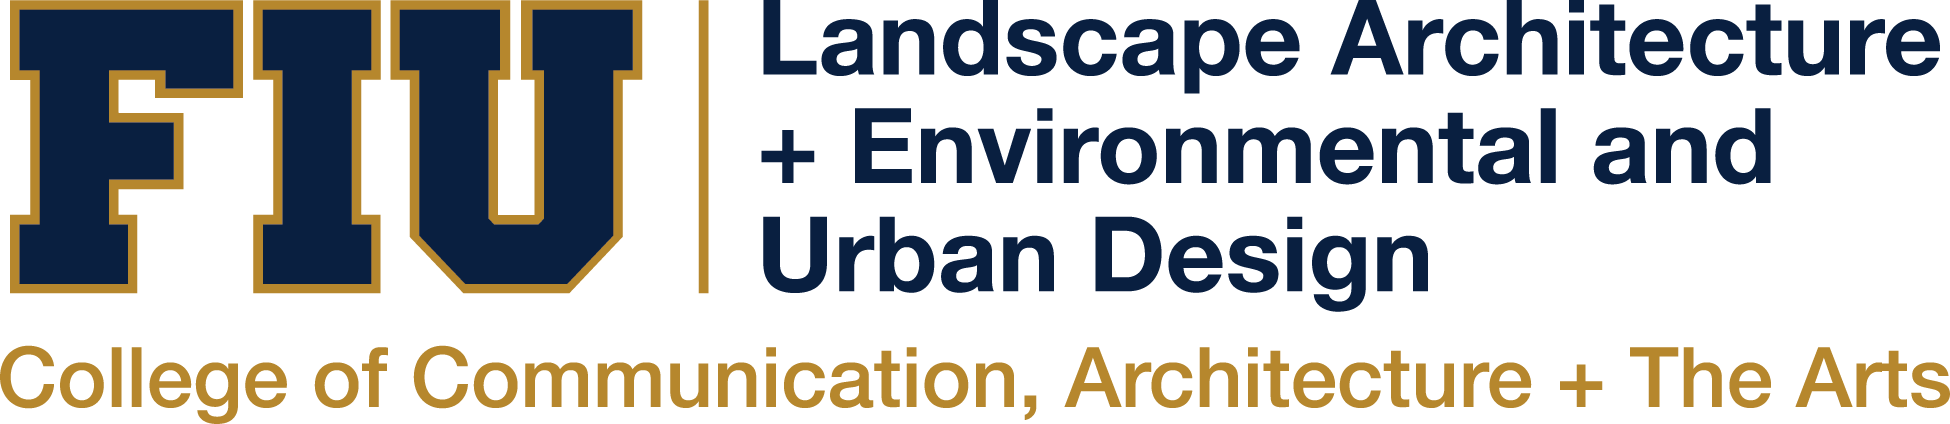 Department of Landscape Architecture Logo